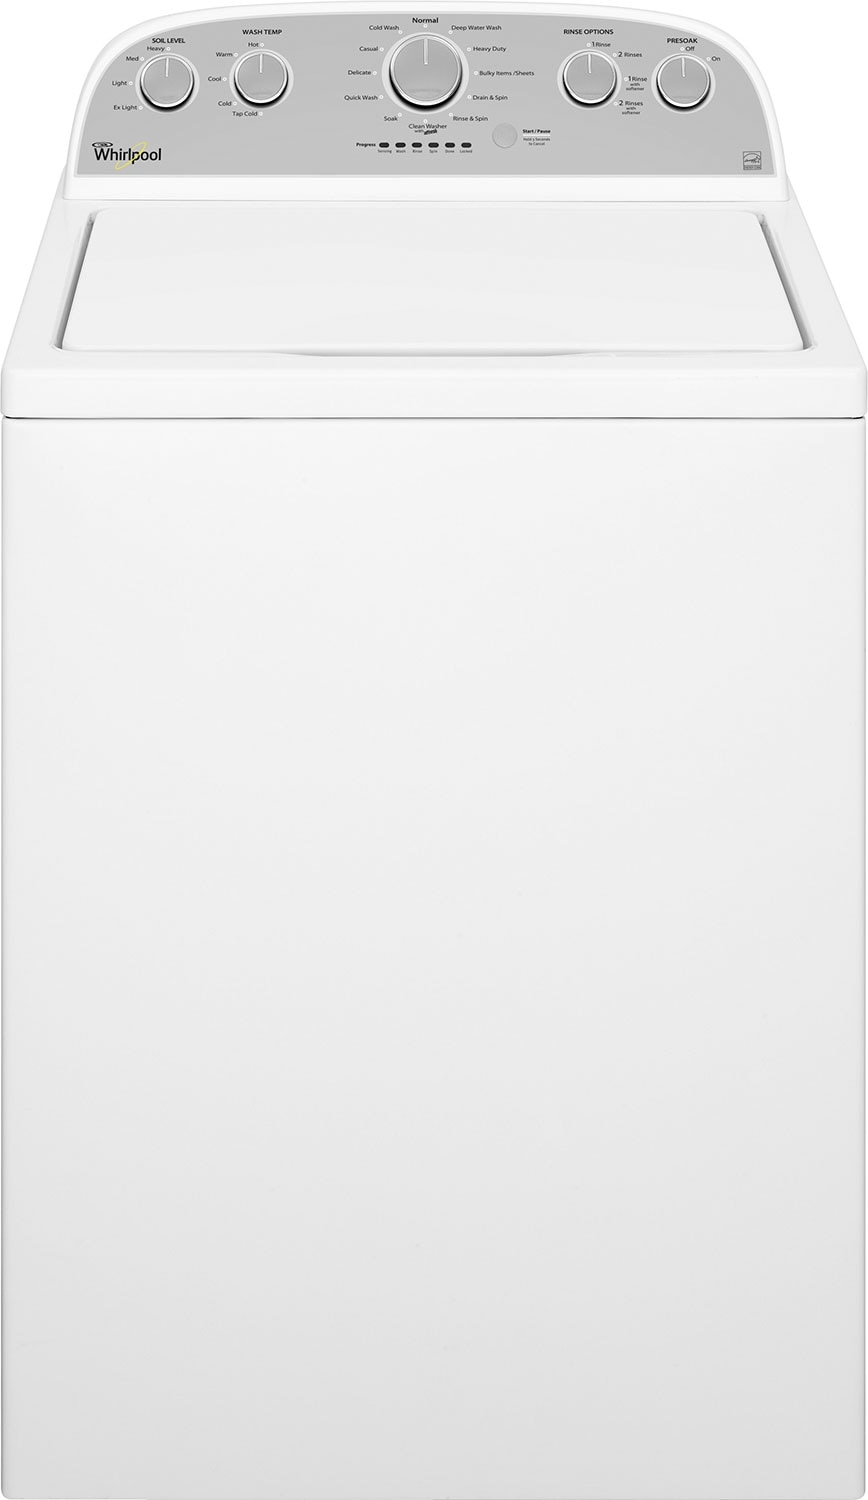 Washers and Dryers - Whirlpool® 5.0 Cu. Ft. Cabrio® High-Efficiency Top-Load Washer